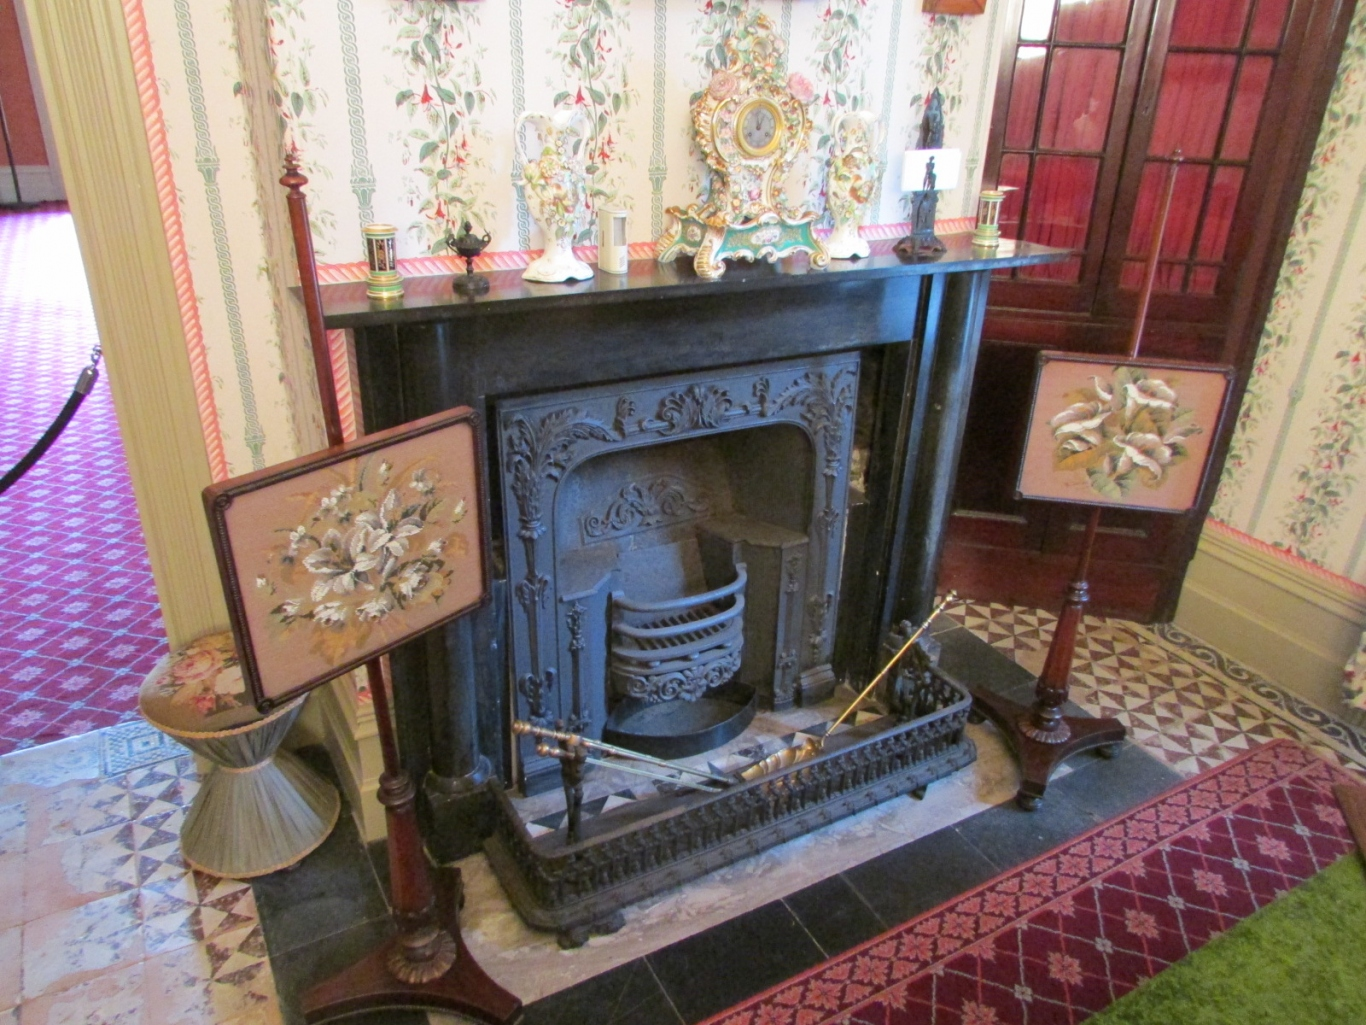 Fireplace flanked by two ornate screens and surrounded by a fender and grate, with mantelpiece above.